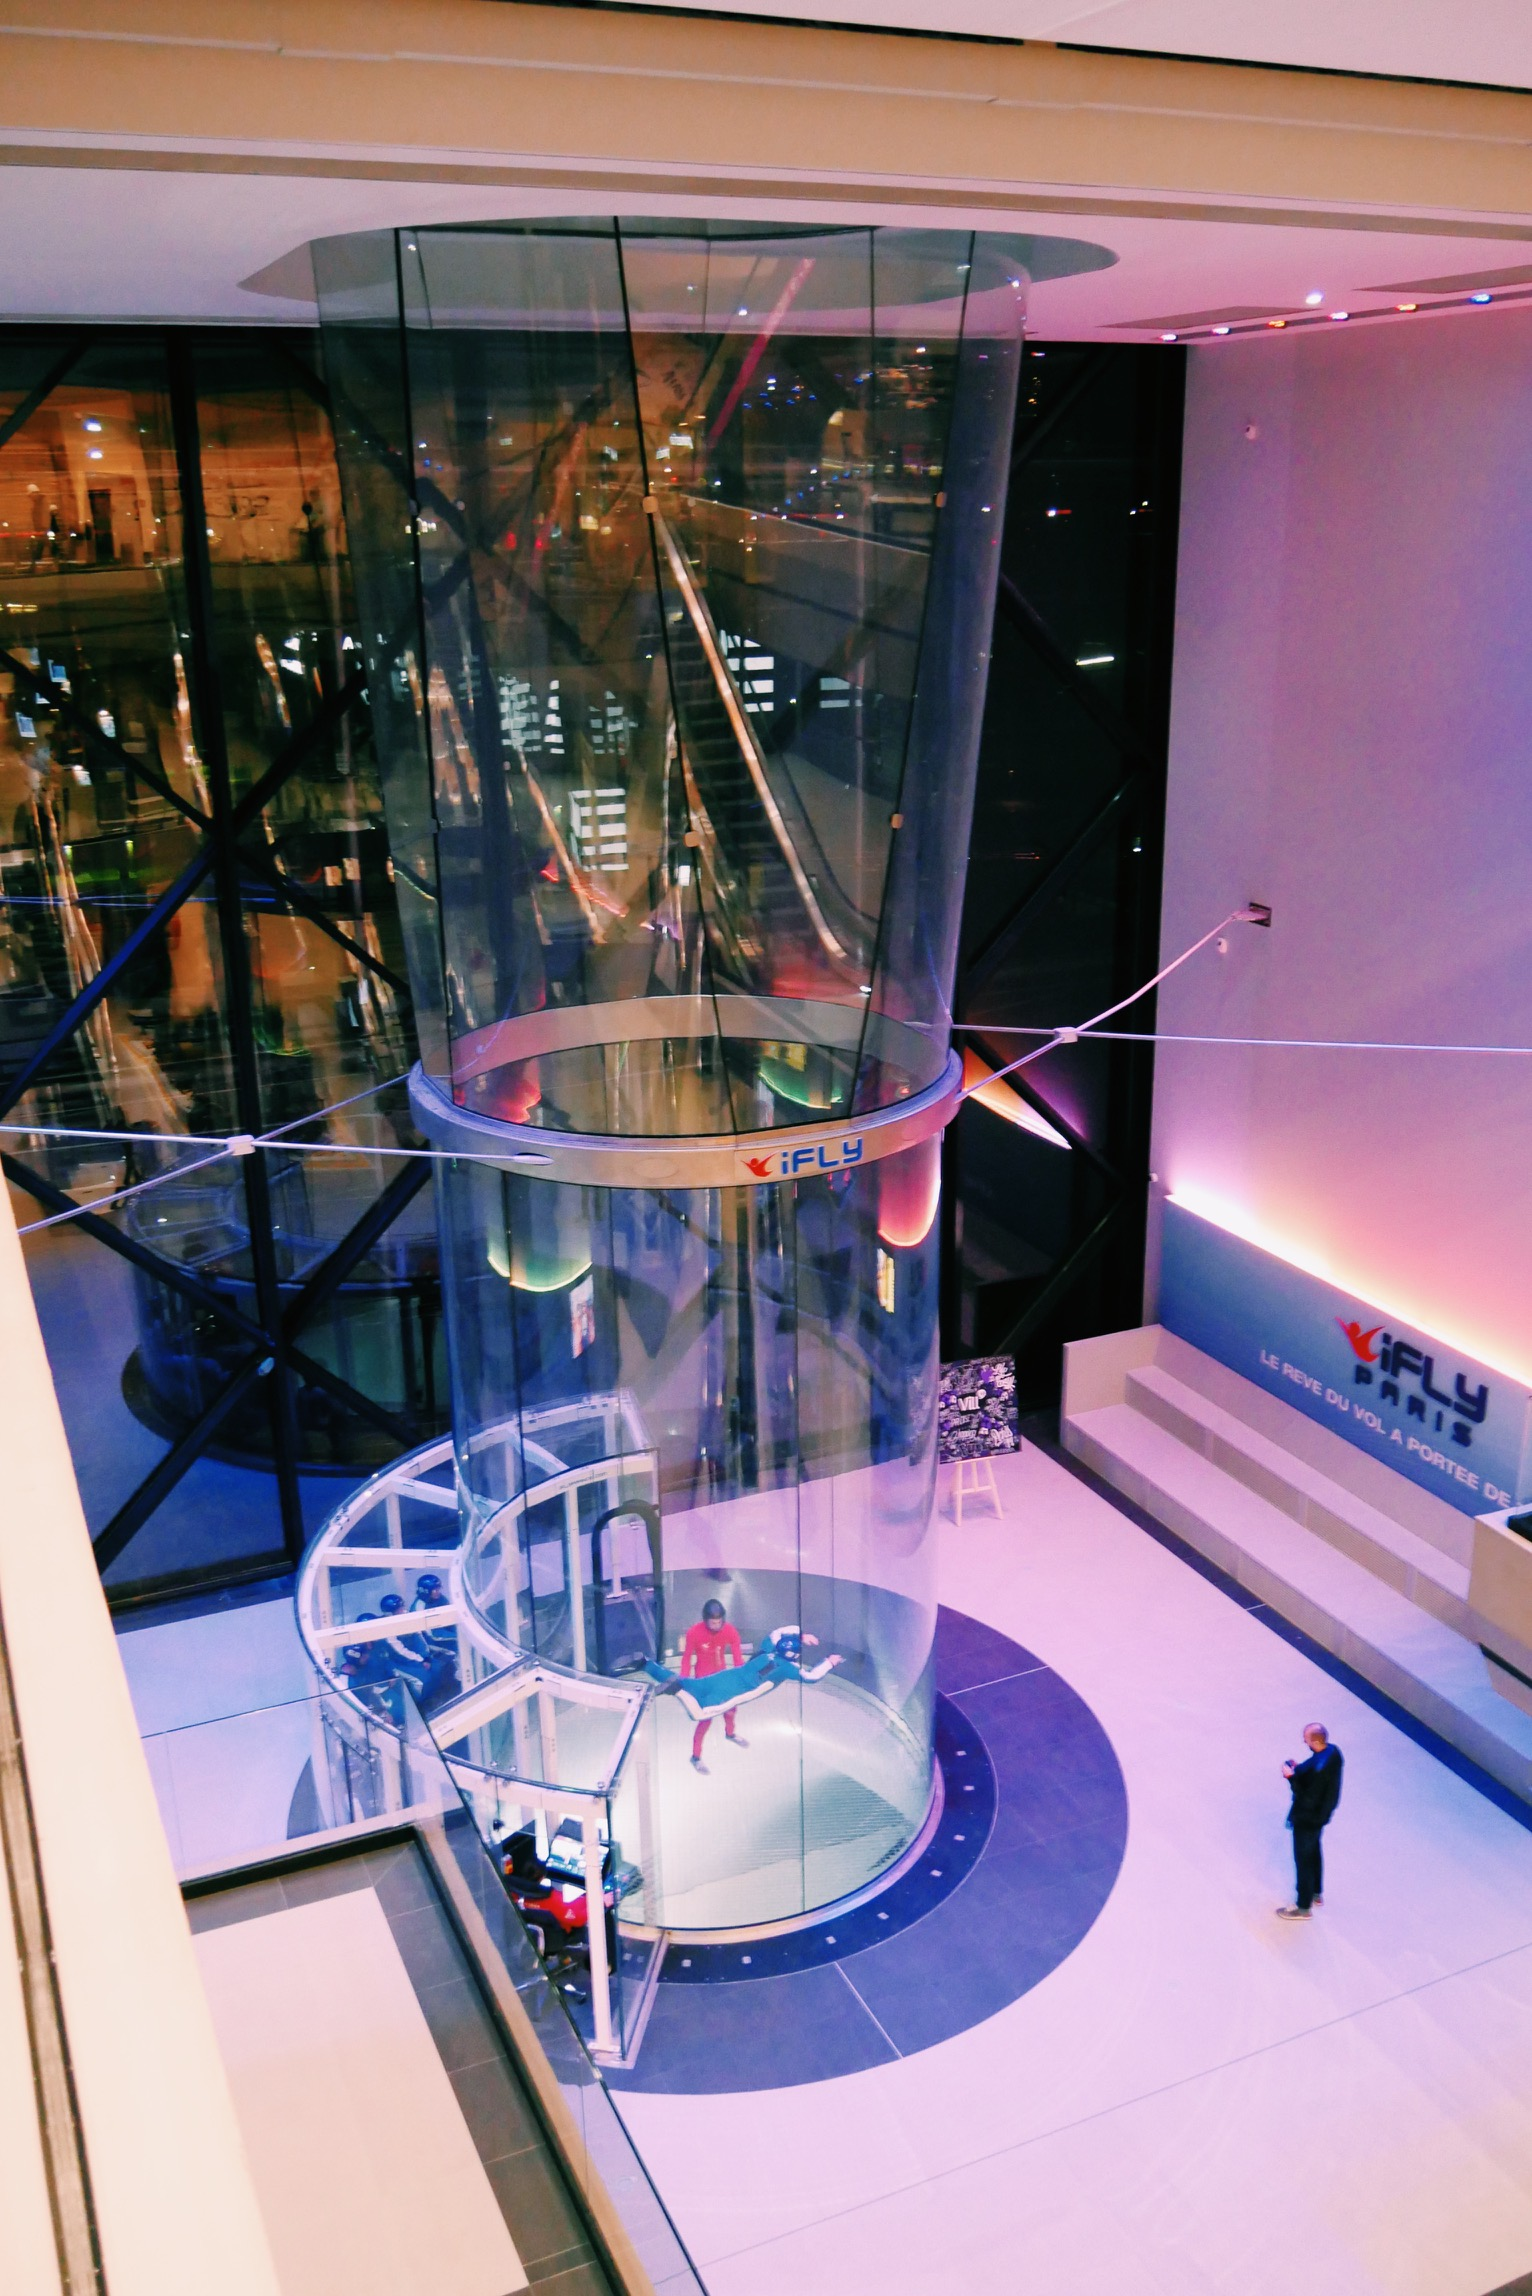 Ifly-France-simulateur-chute-libre-indoor-Vill-Up-La-Villette-Paris-photo-usofparis-blog